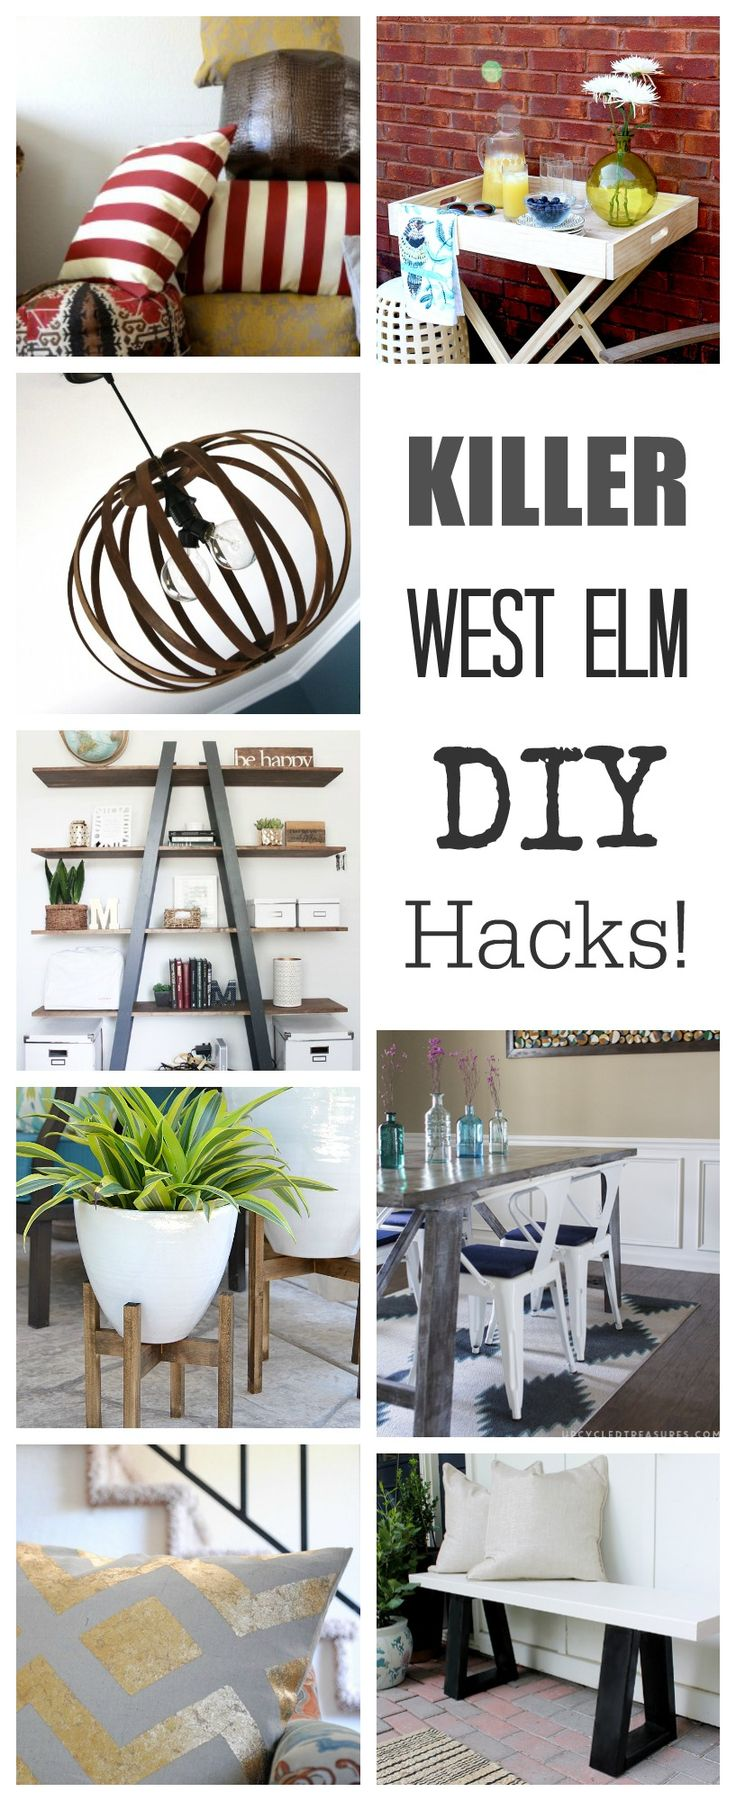 Here are some of my favorite West Elm Hacks! Get the same look with lots of your home decor for so much less money by DIYing your own furniture, pillows, …